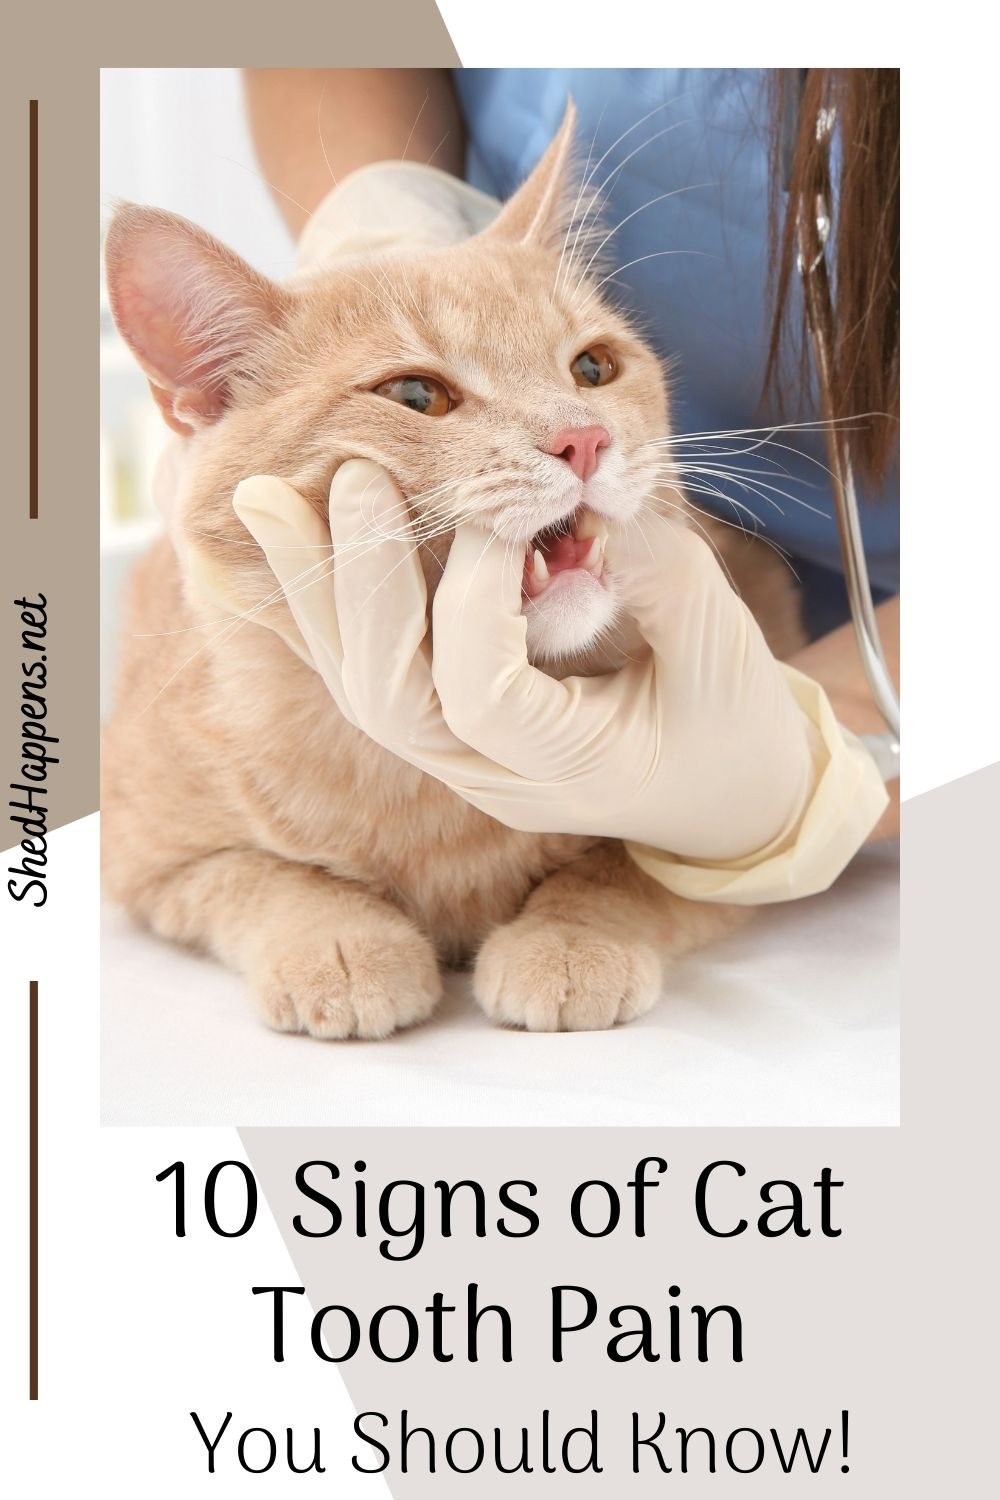 An orange tabby cat is laying on an examination table, a veterinarian wearing blue scrubs is leaning over it, holding its mouth open with a gloved hand. Text states 10 signs of cat tooth pain you should know!